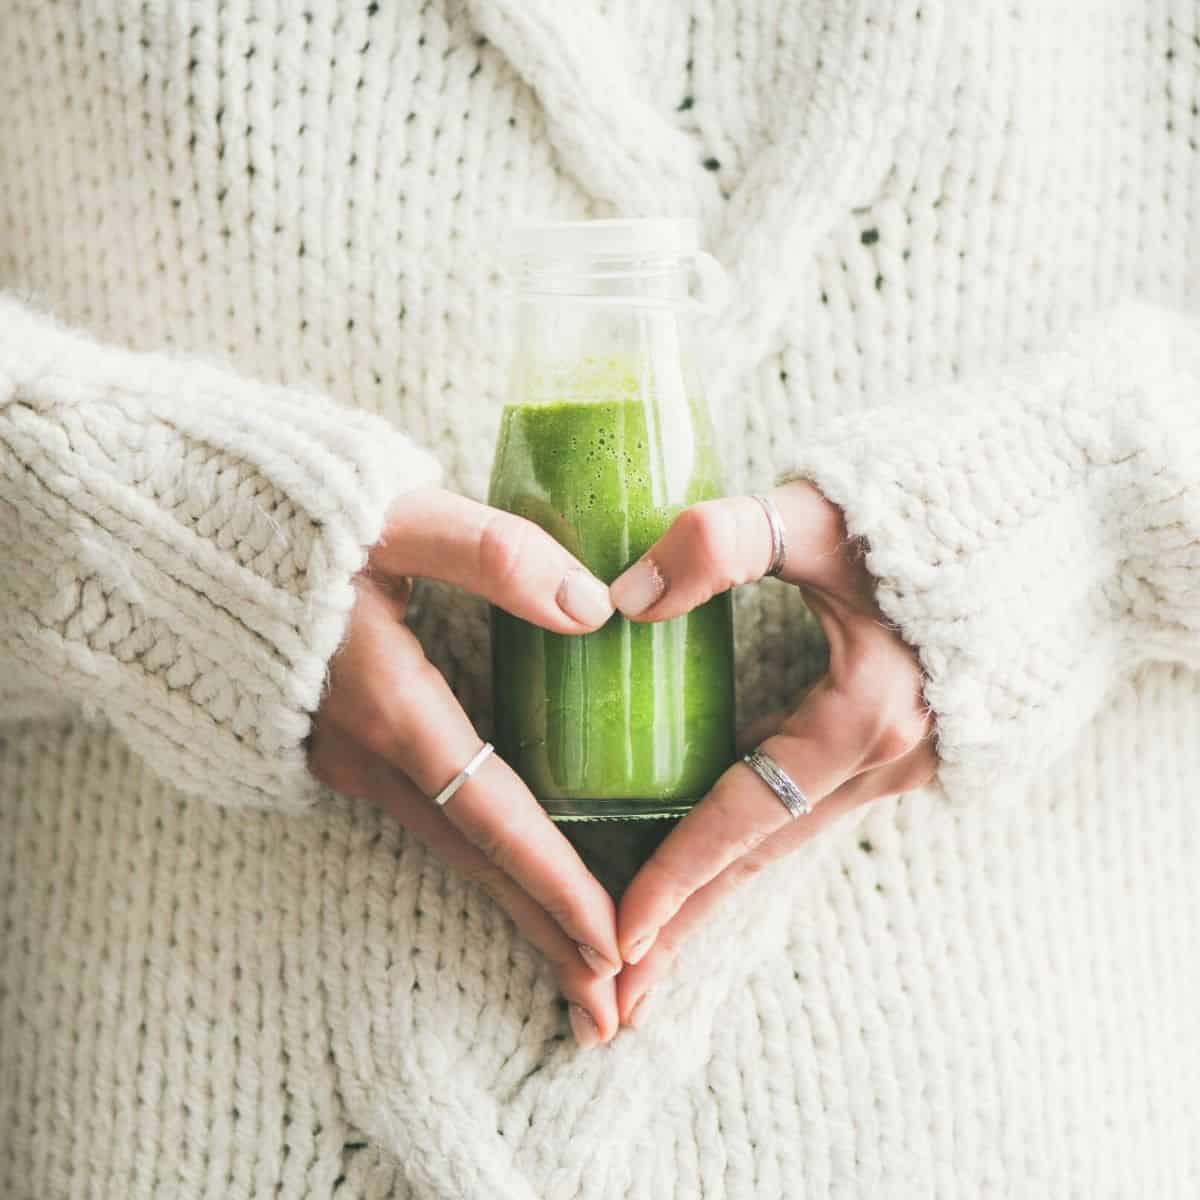 woman holds a green smoothie